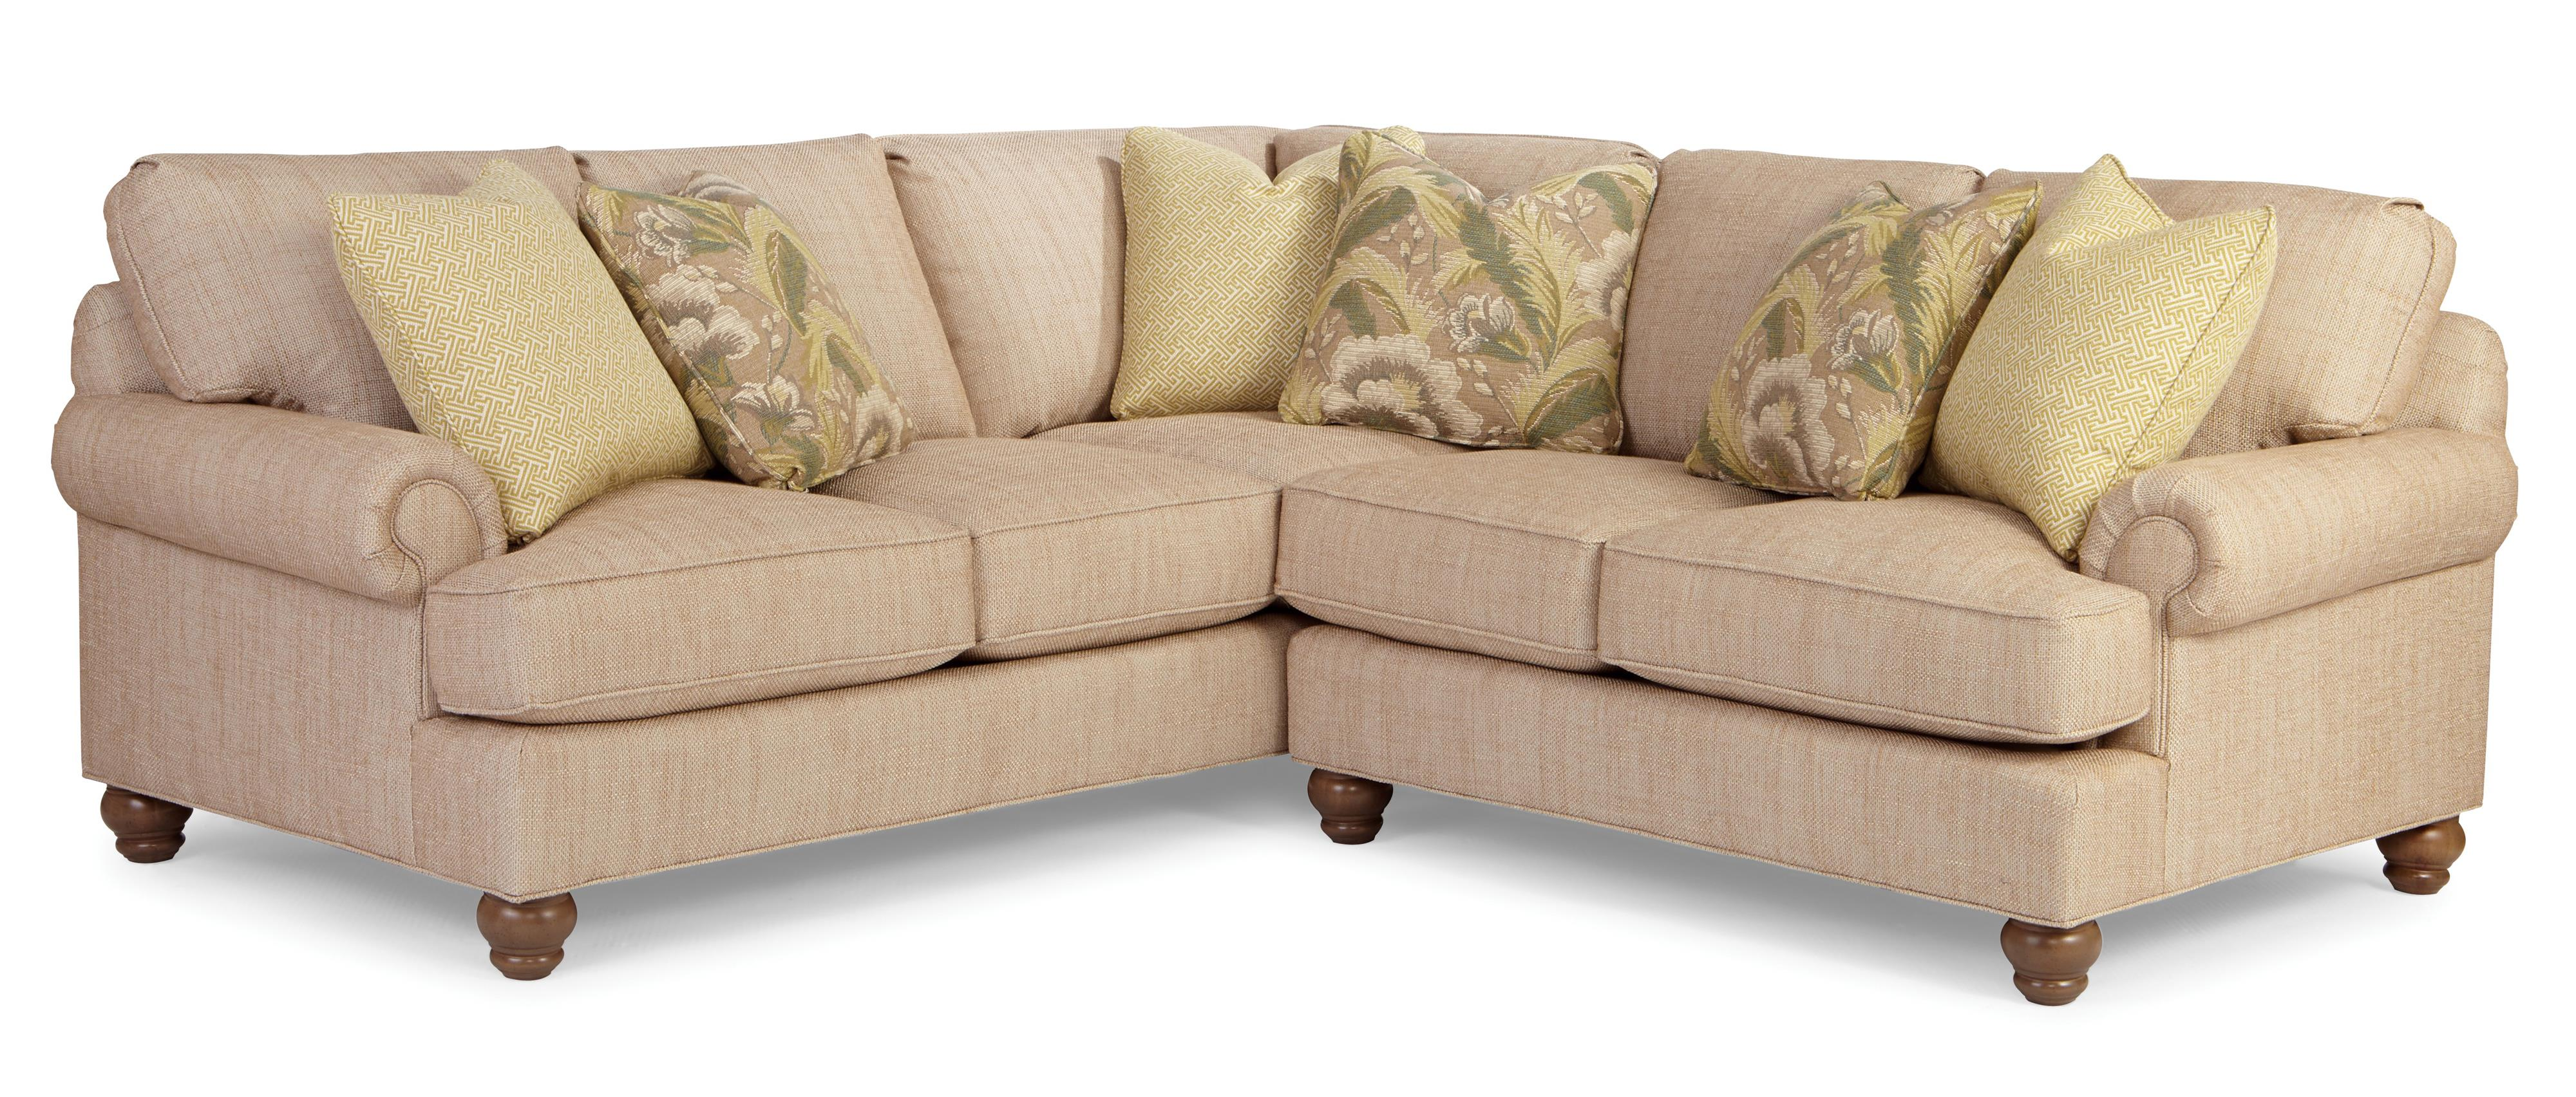 P9 Custom Upholstery Customizable 2 Pc Sectional Sofa w/ RAF Love by Paula Deen by Craftmaster at Powell's Furniture and Mattress